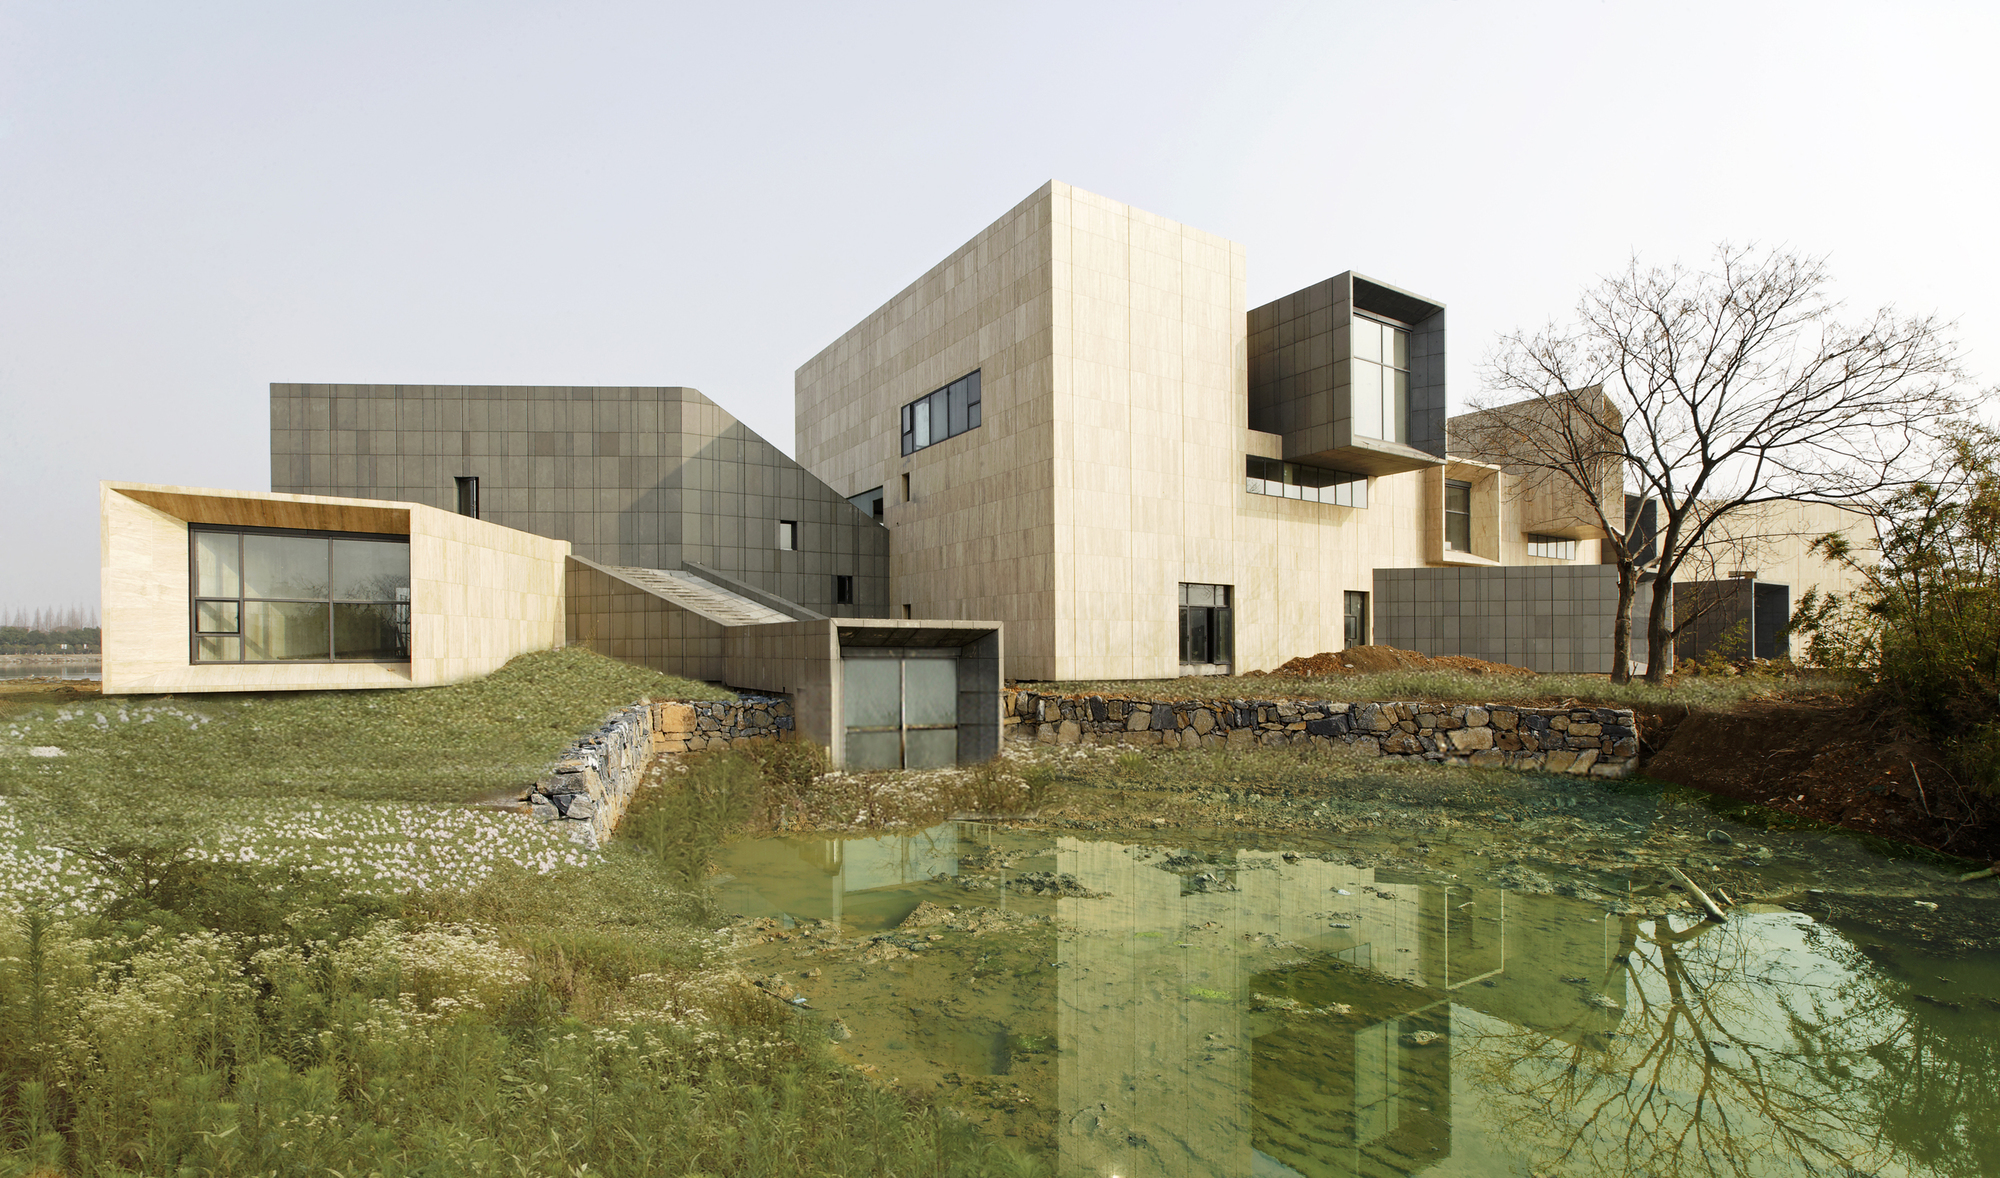 Gallery xixi wetland art village wang weijen for Art architectural